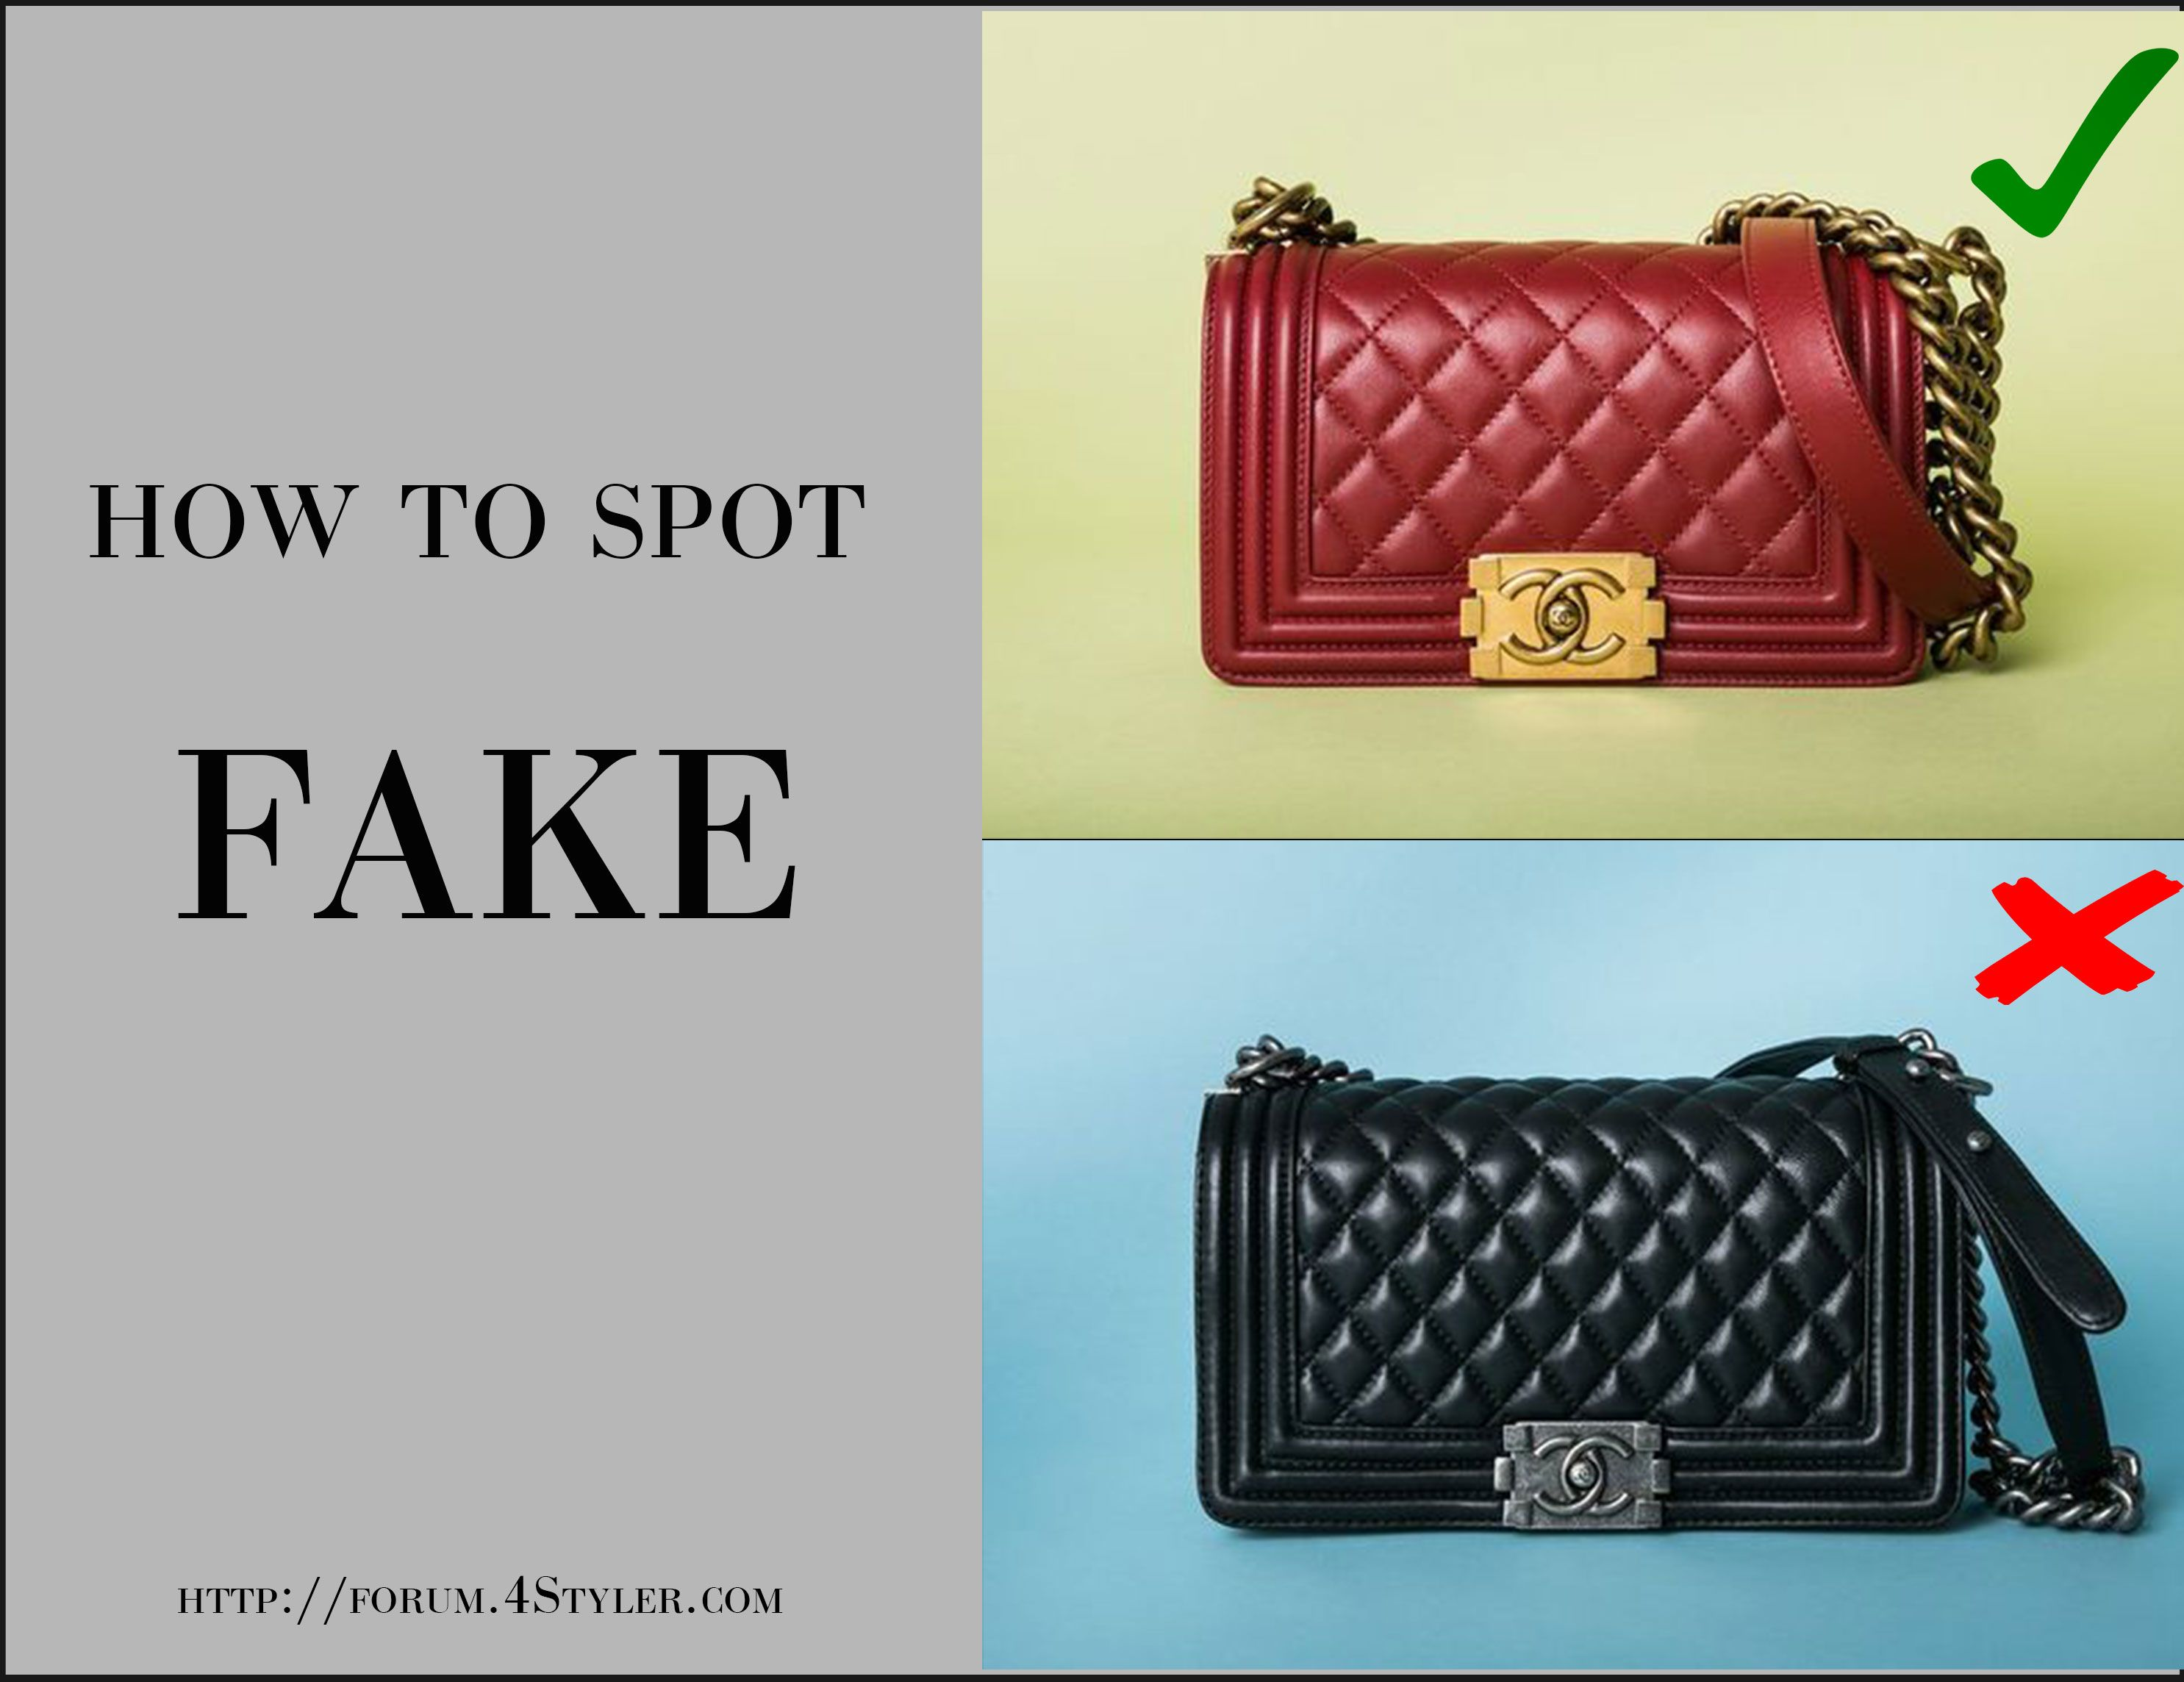 97beca42b1fa Read how to spot FAKE luxury clothes at our fashion forum  faske  chanel   bag  255  handbag  crossbody